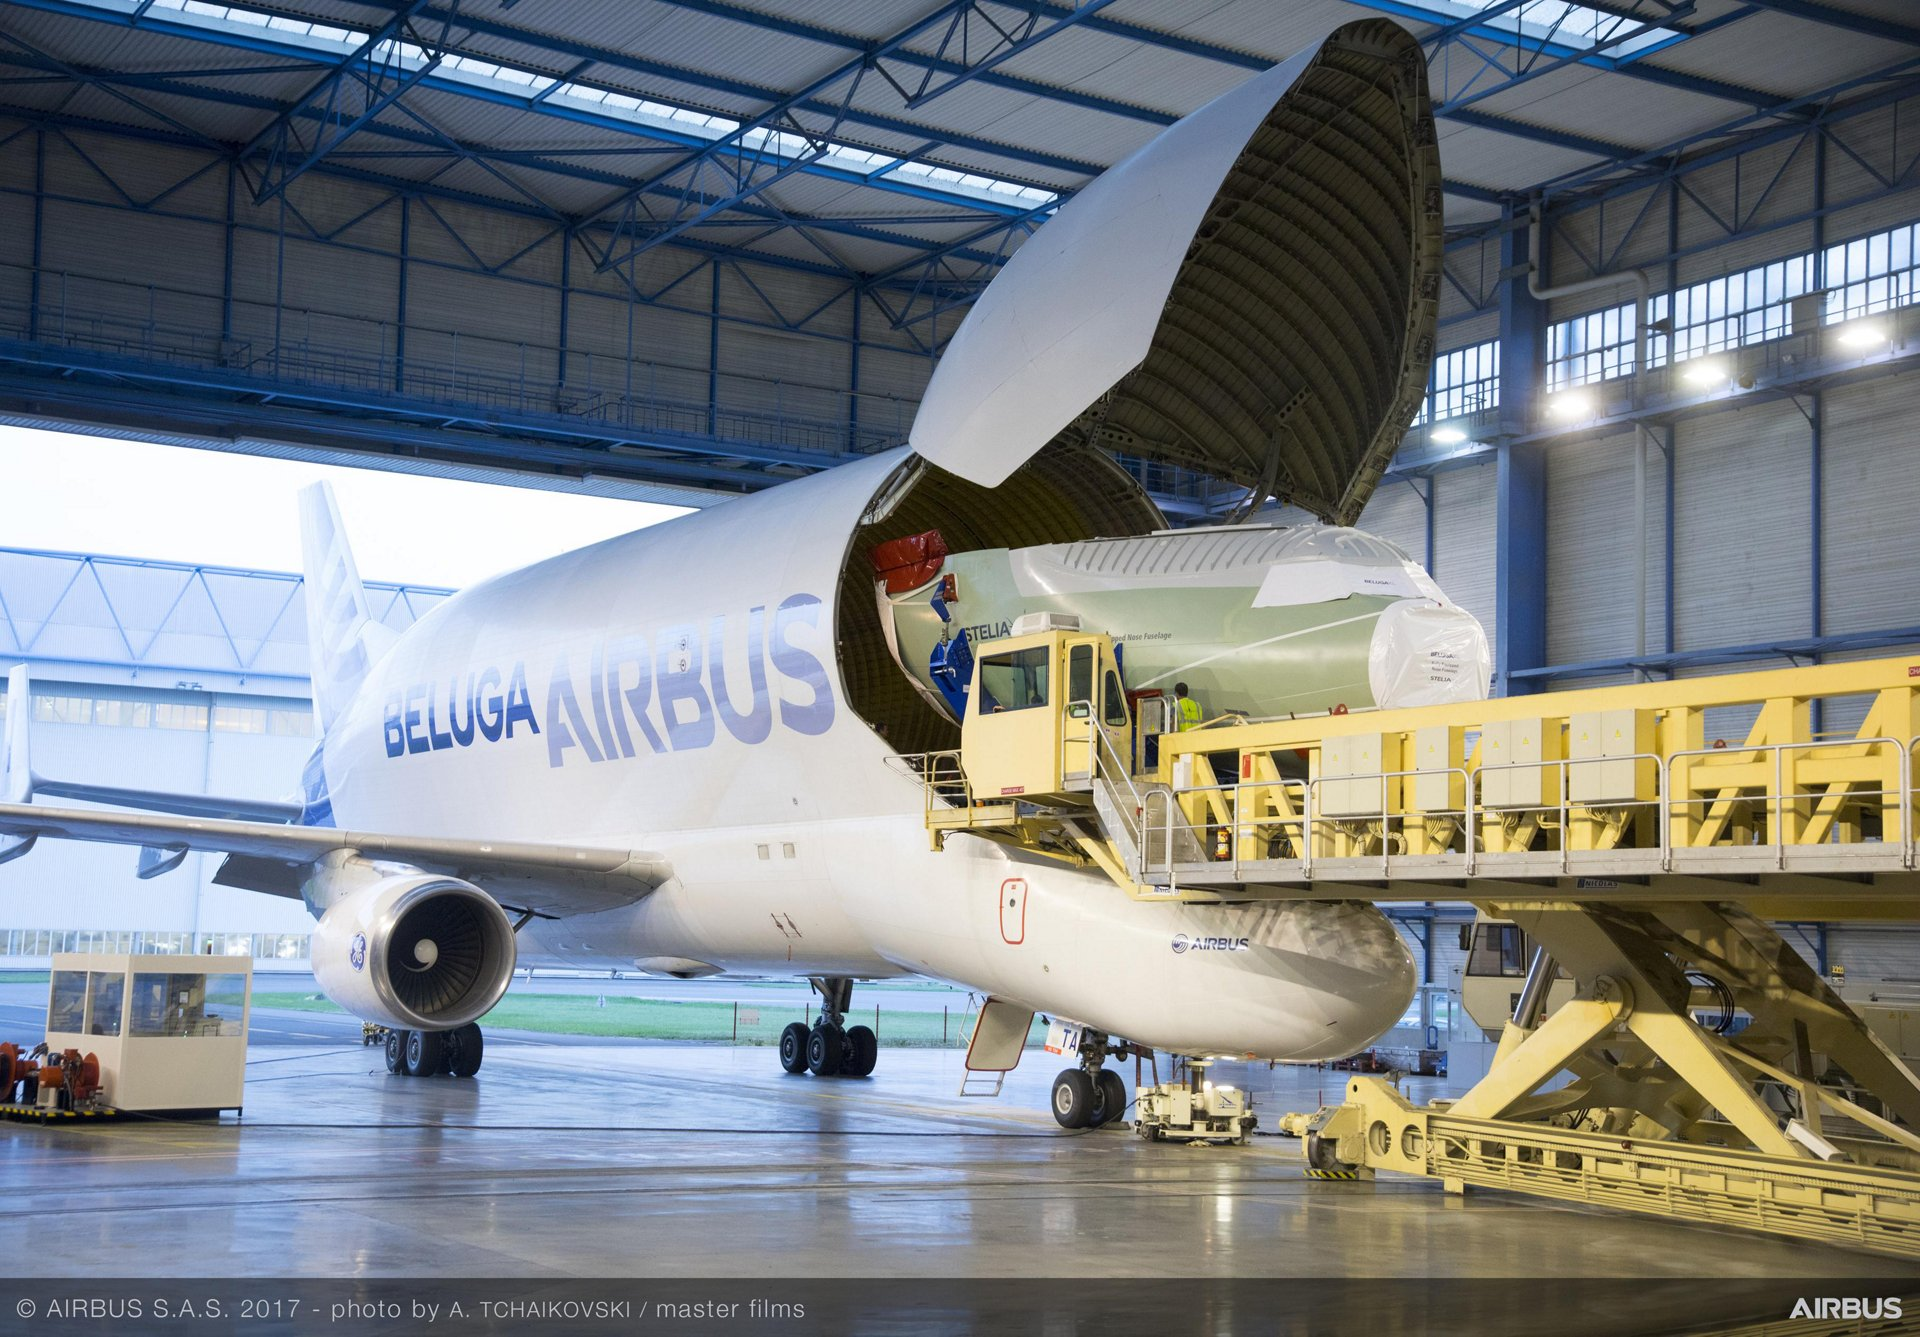 BelugaXL_Nose section delivery 1